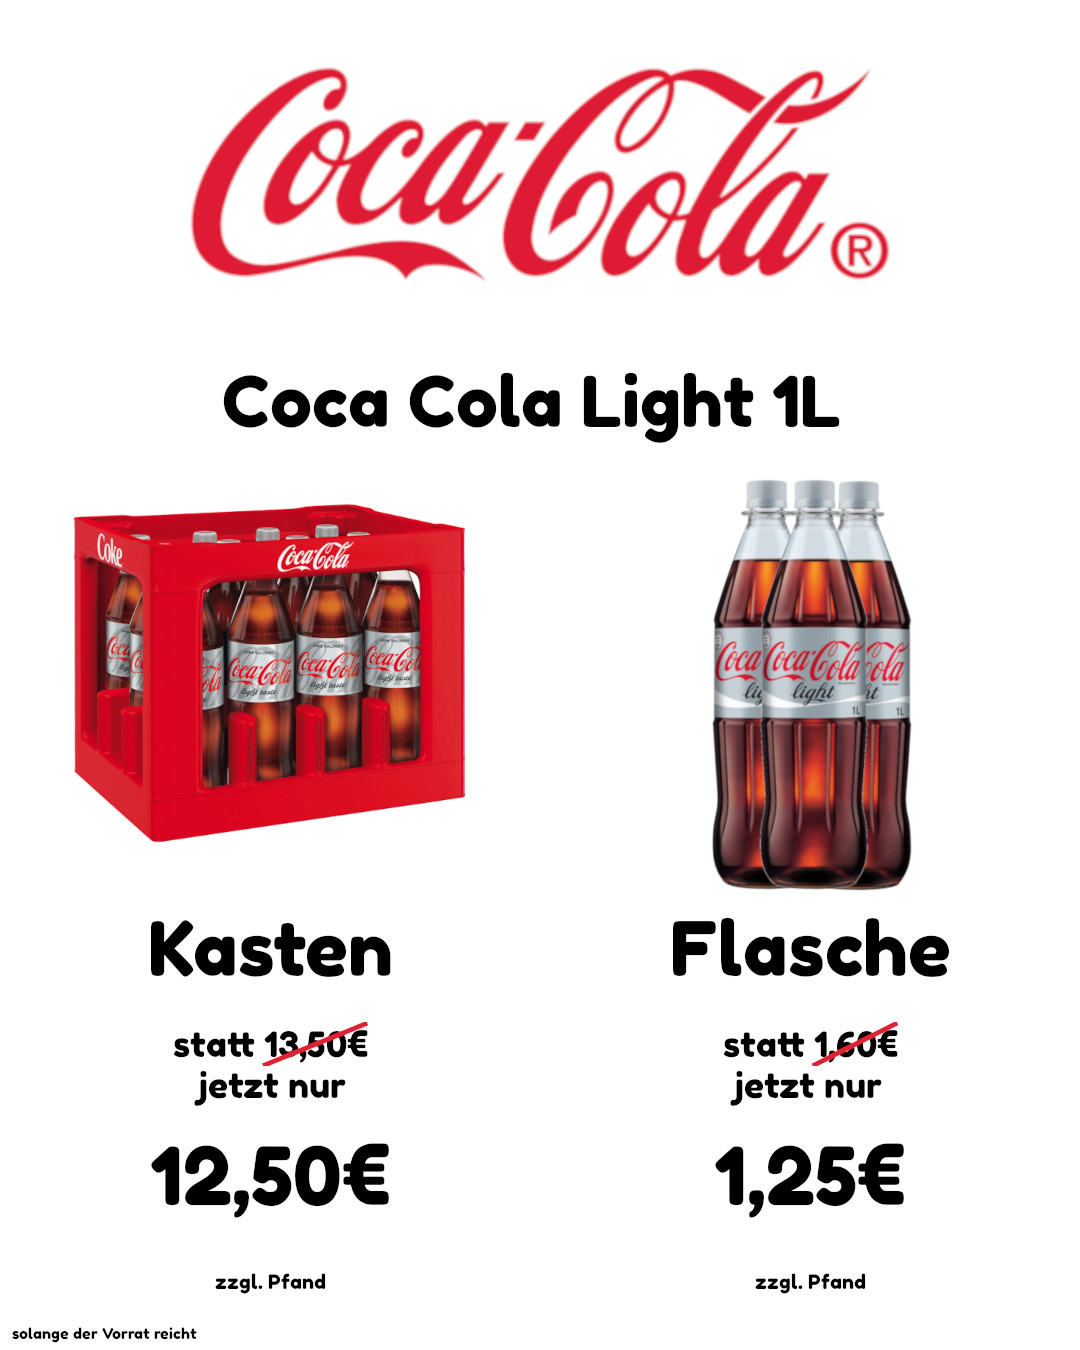 Coca Cola Light website